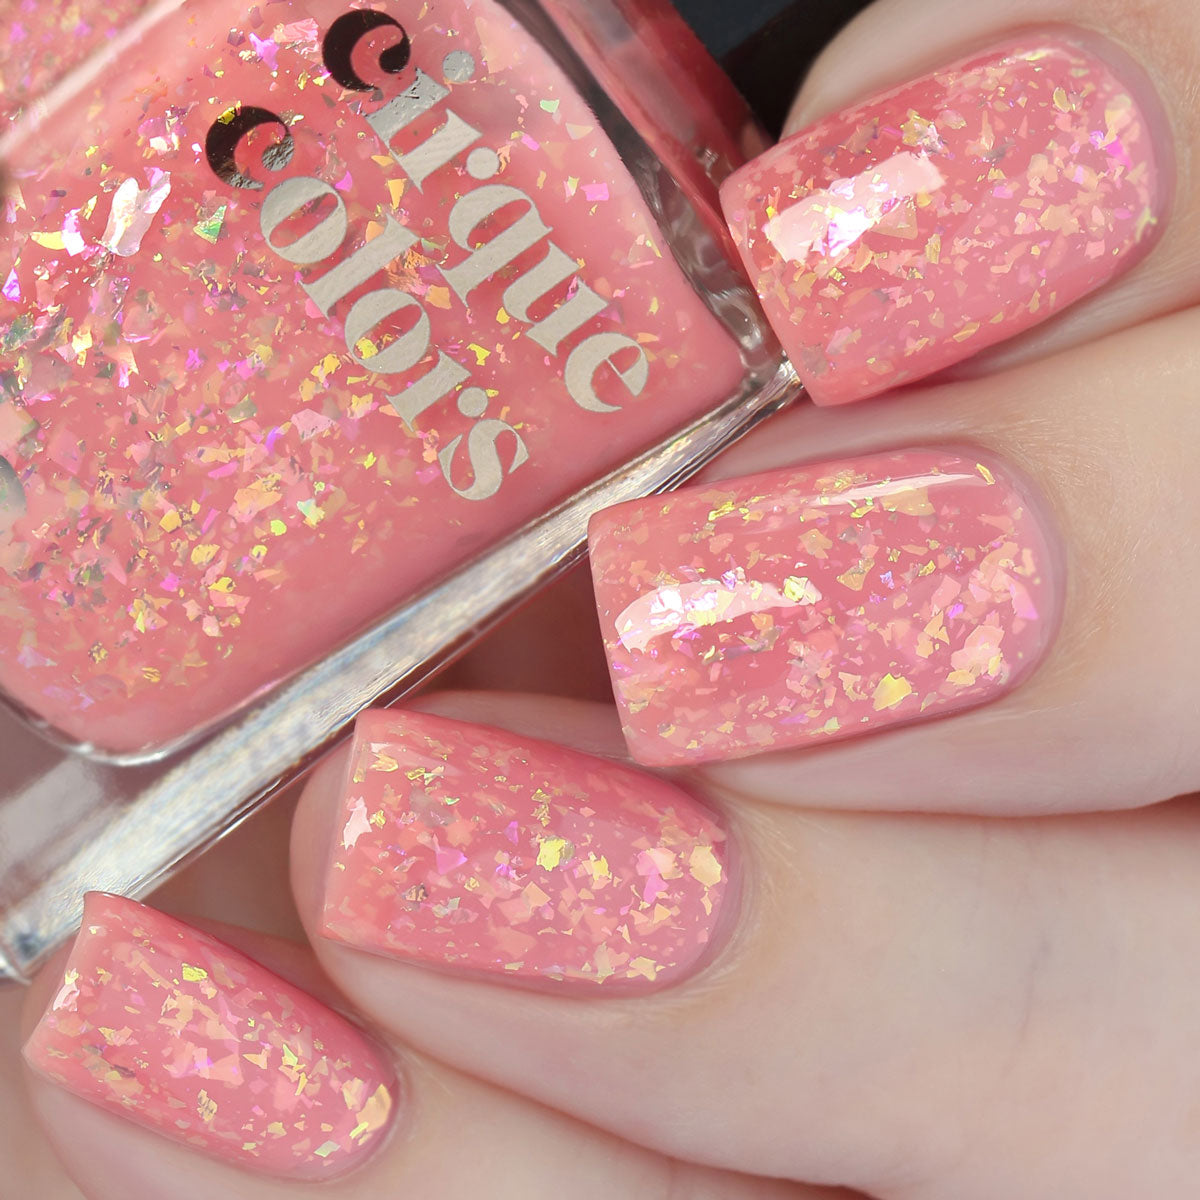 *PRE-SALE* Cirque Colors - Pink Lemonade